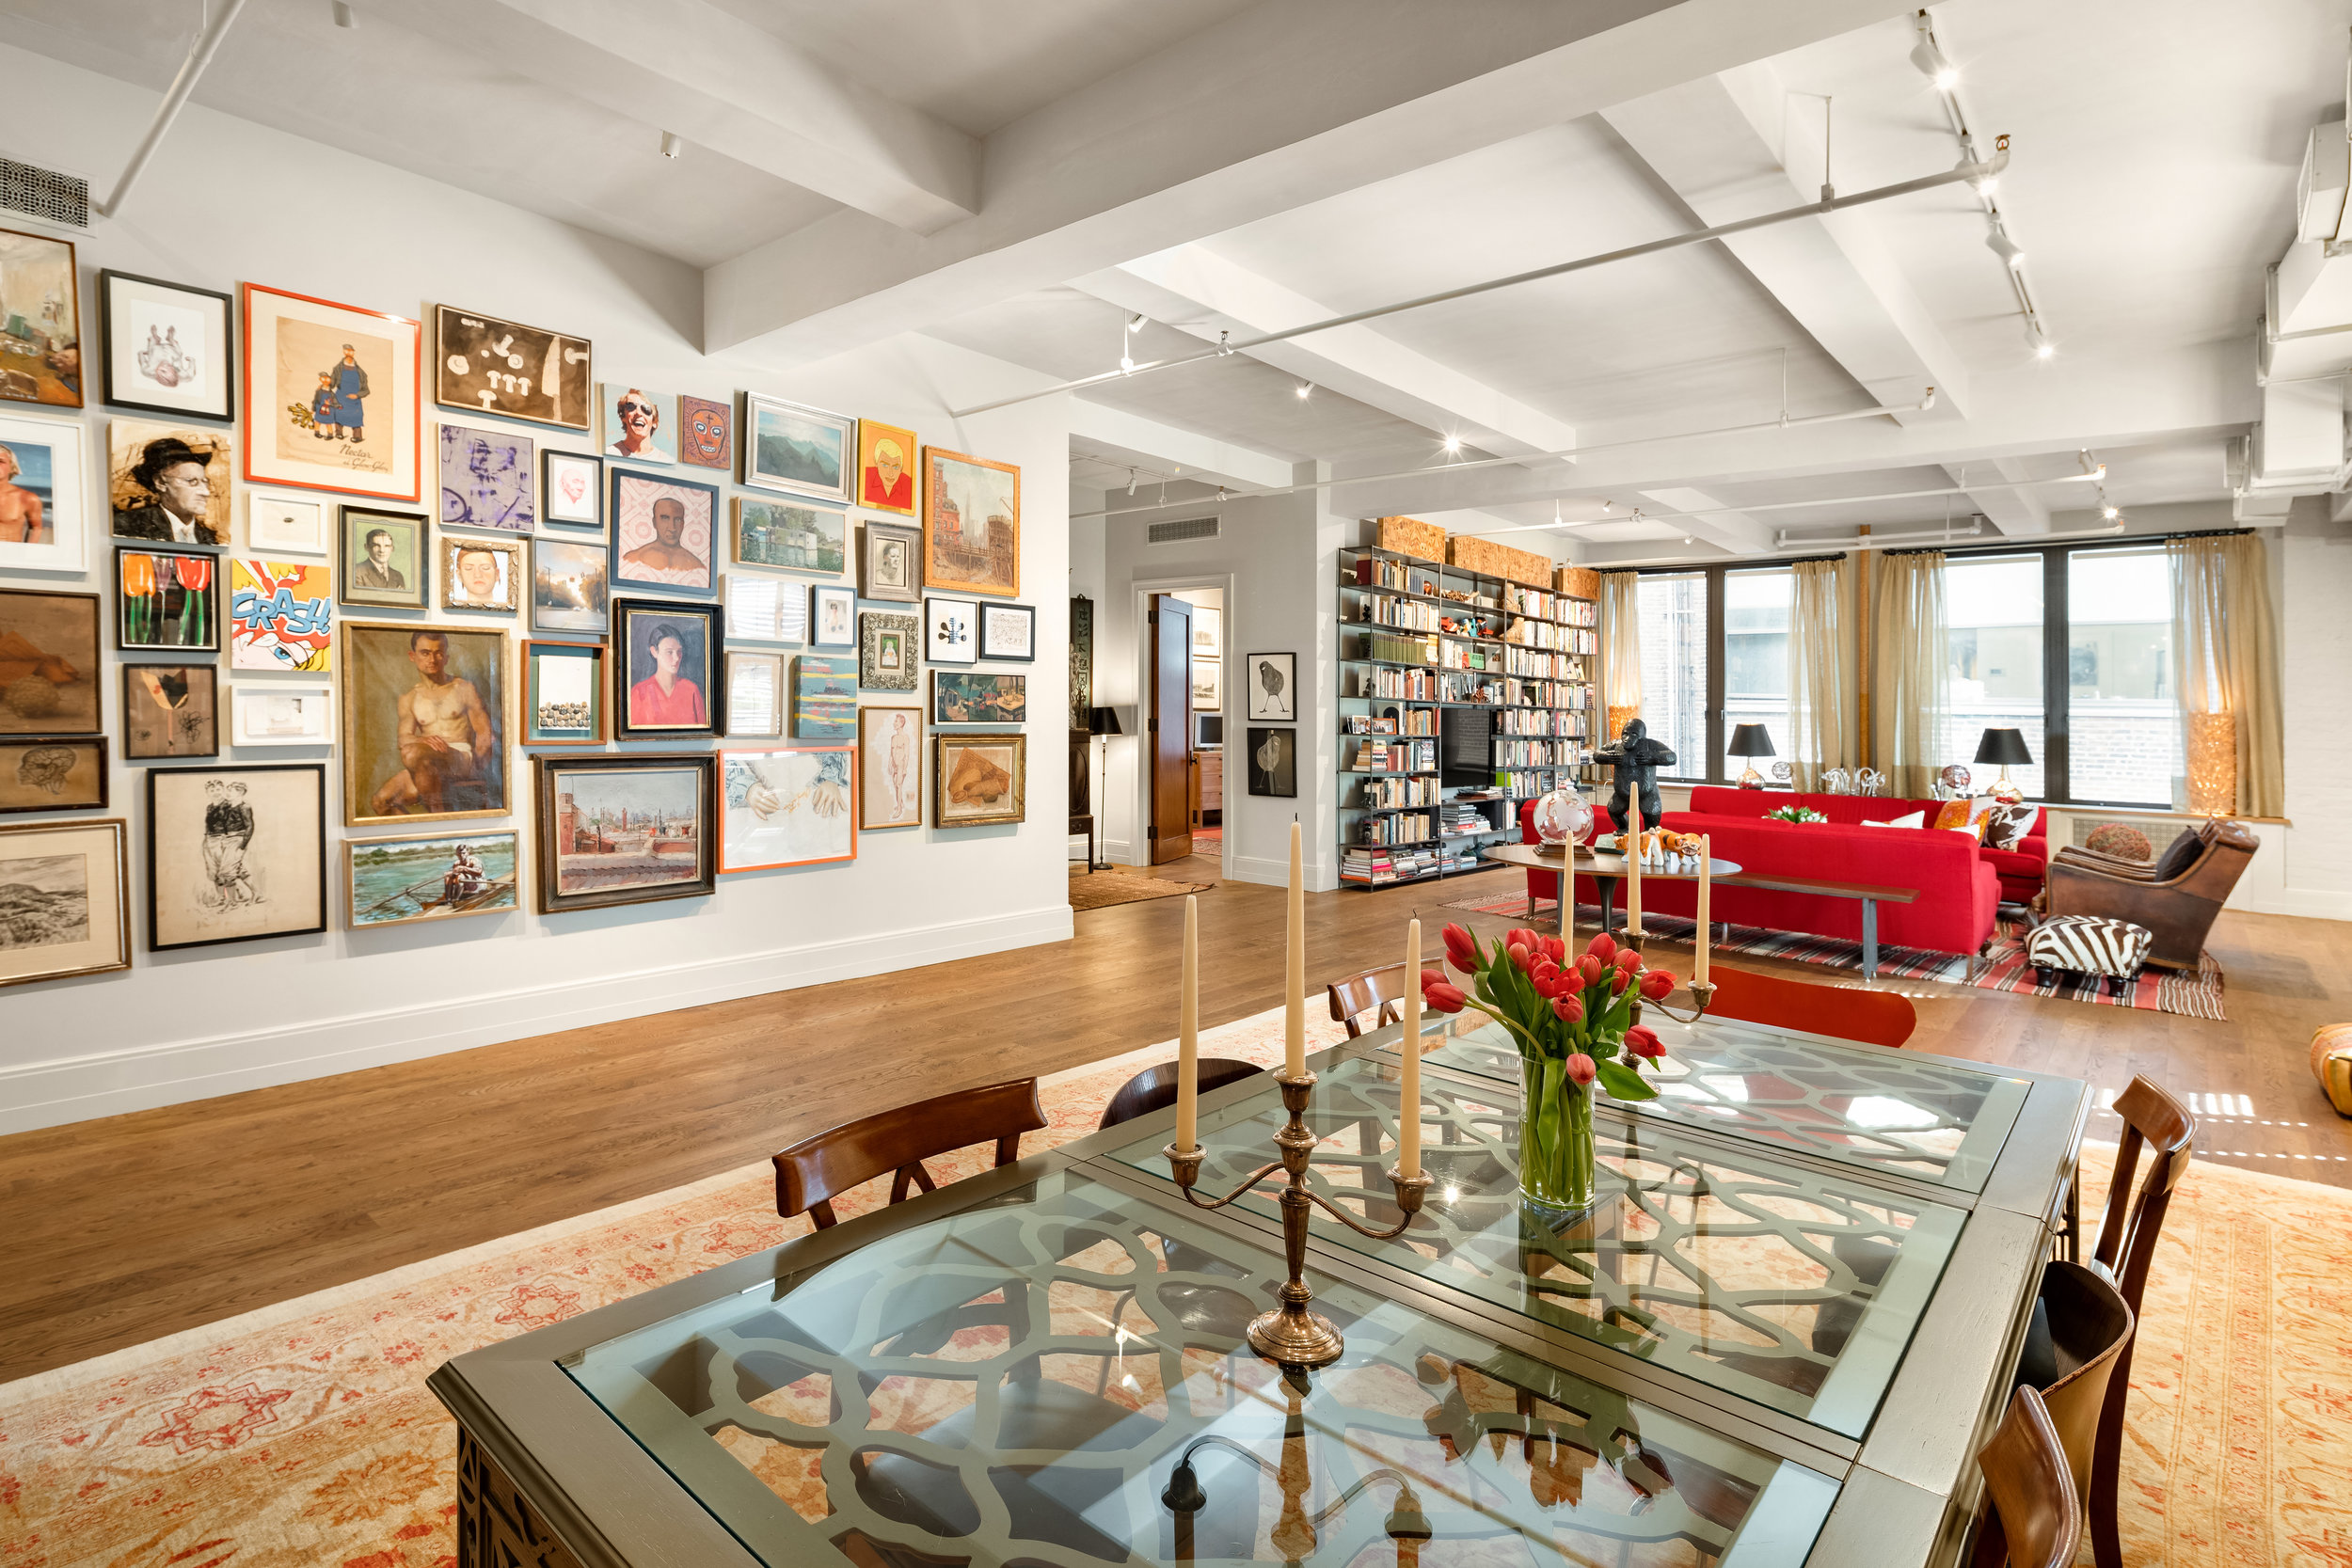 142West26thStreet9-ChelseaNewYork_Holly_Parker_DouglasElliman_Photography_79379619_high_res.jpg